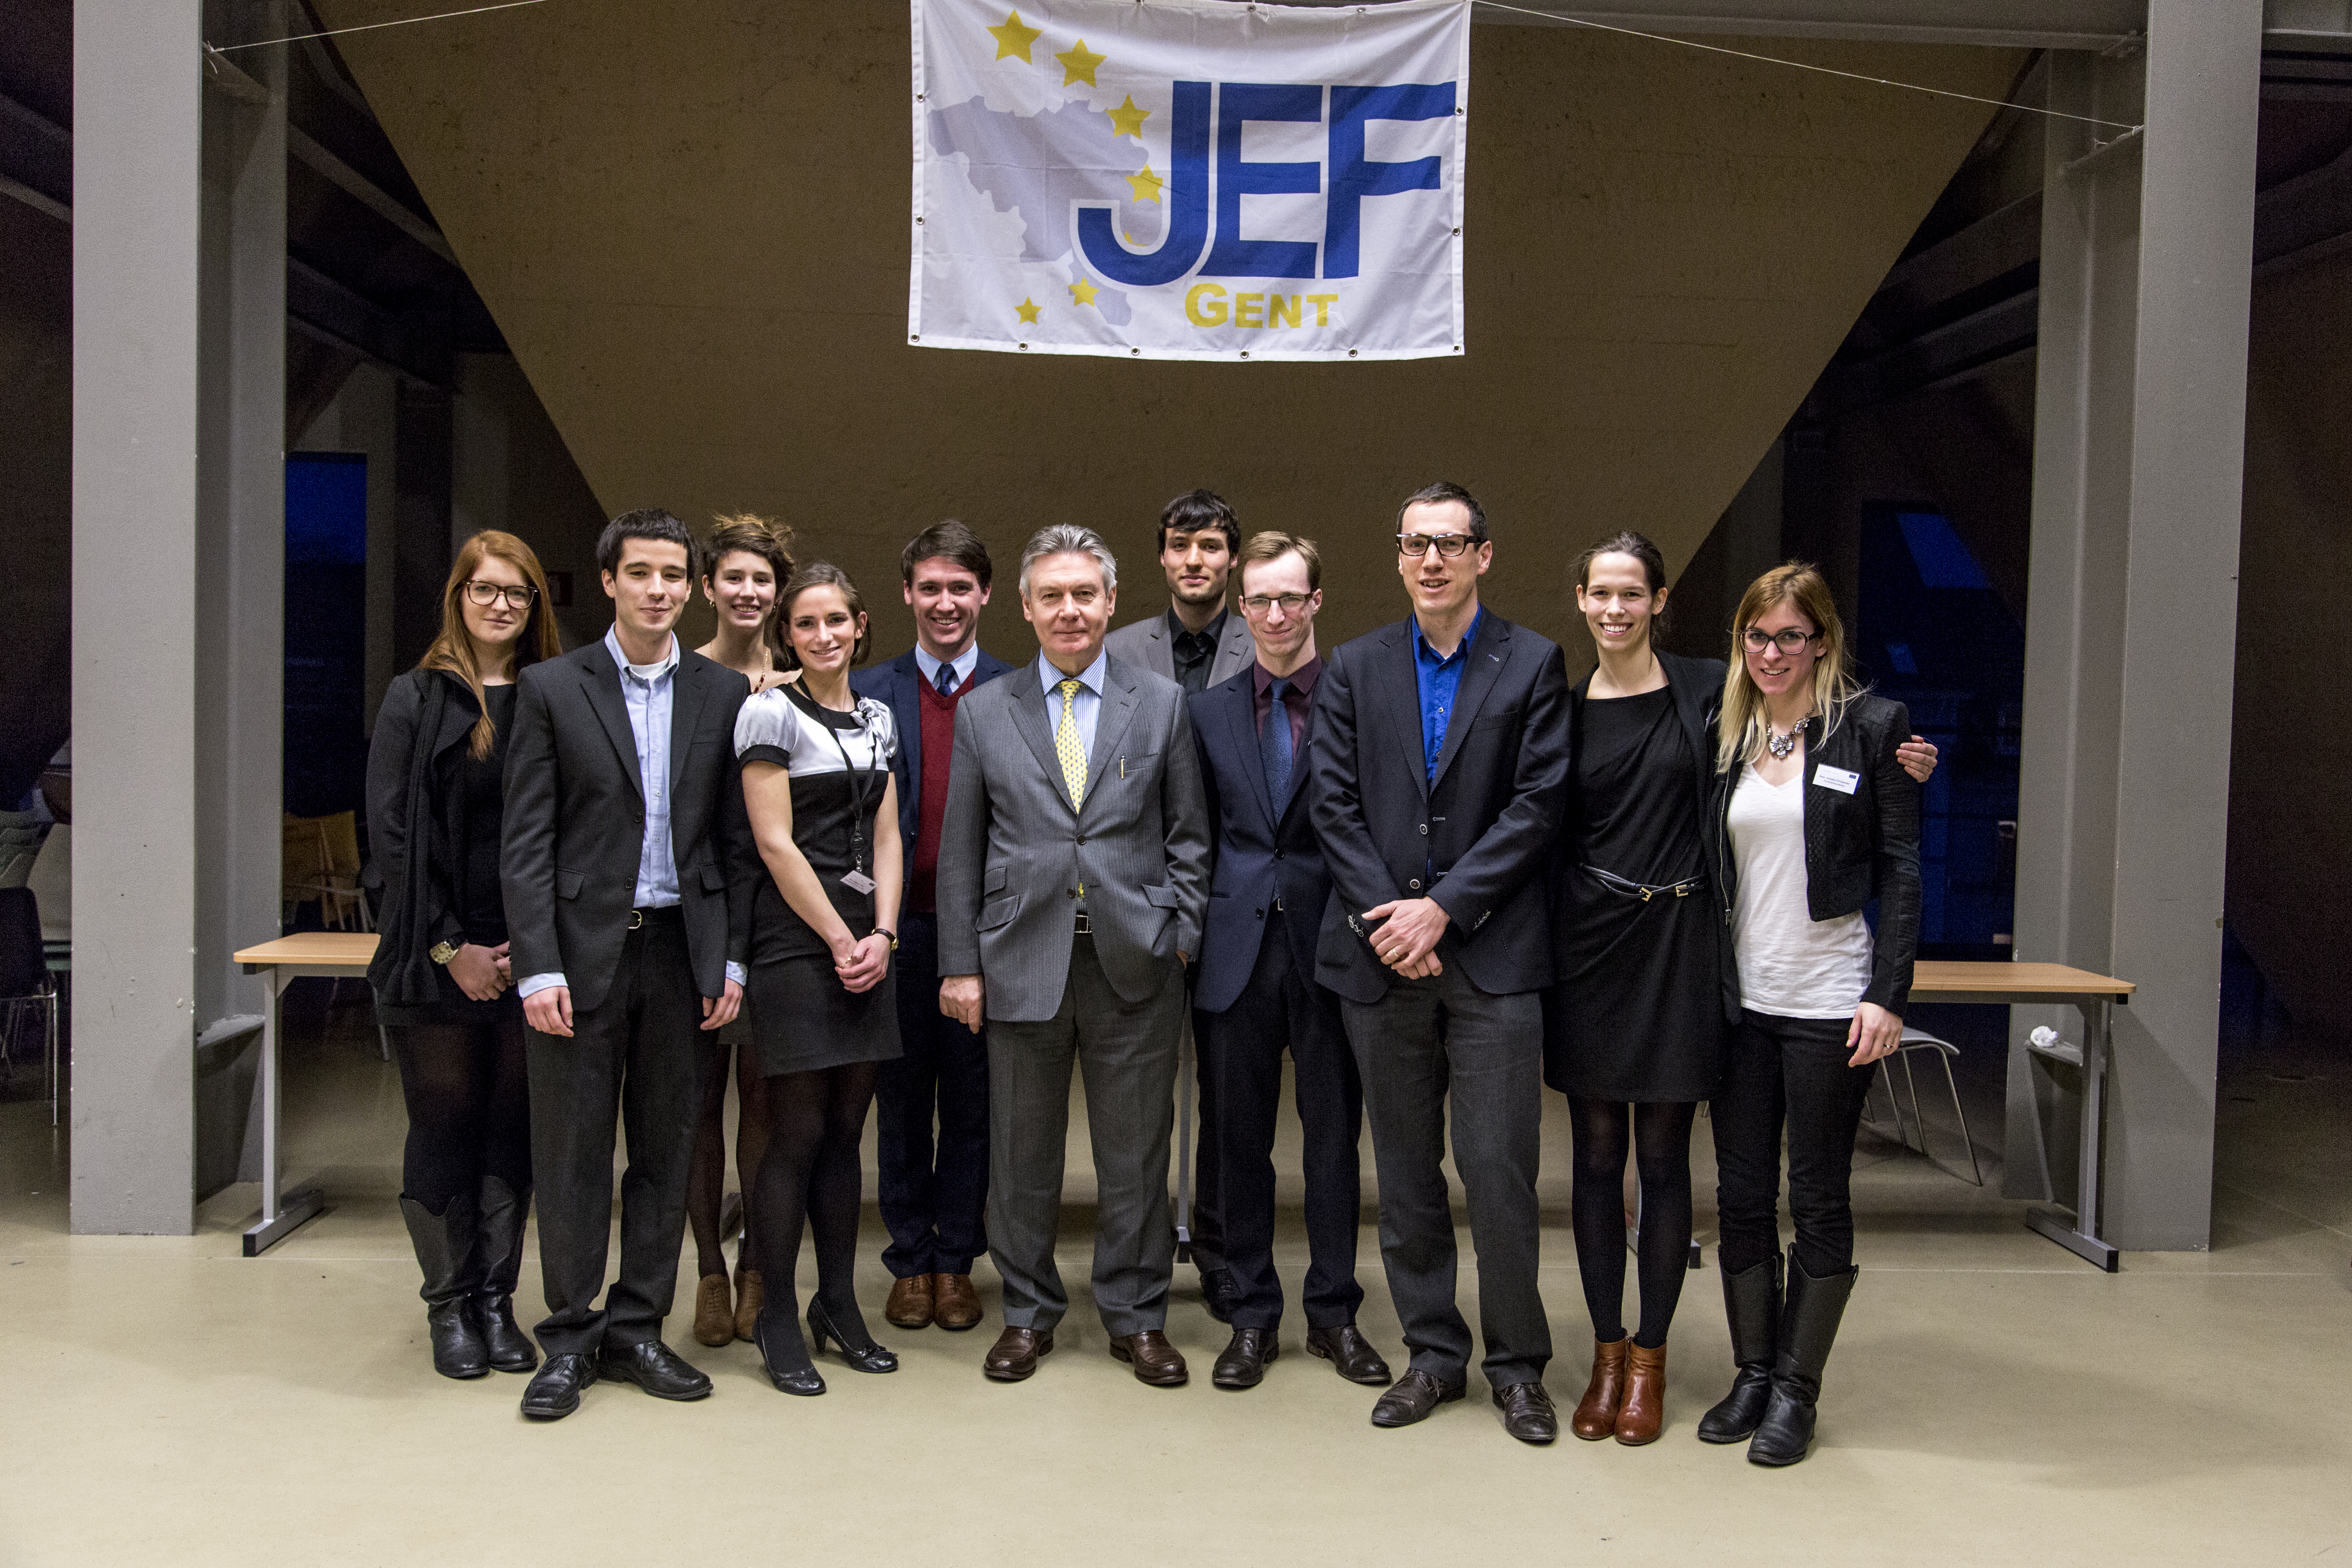 JEF Ghent board with guest speakers Karel De Gucht (center) and Pieter Verhelst (3rd from right)